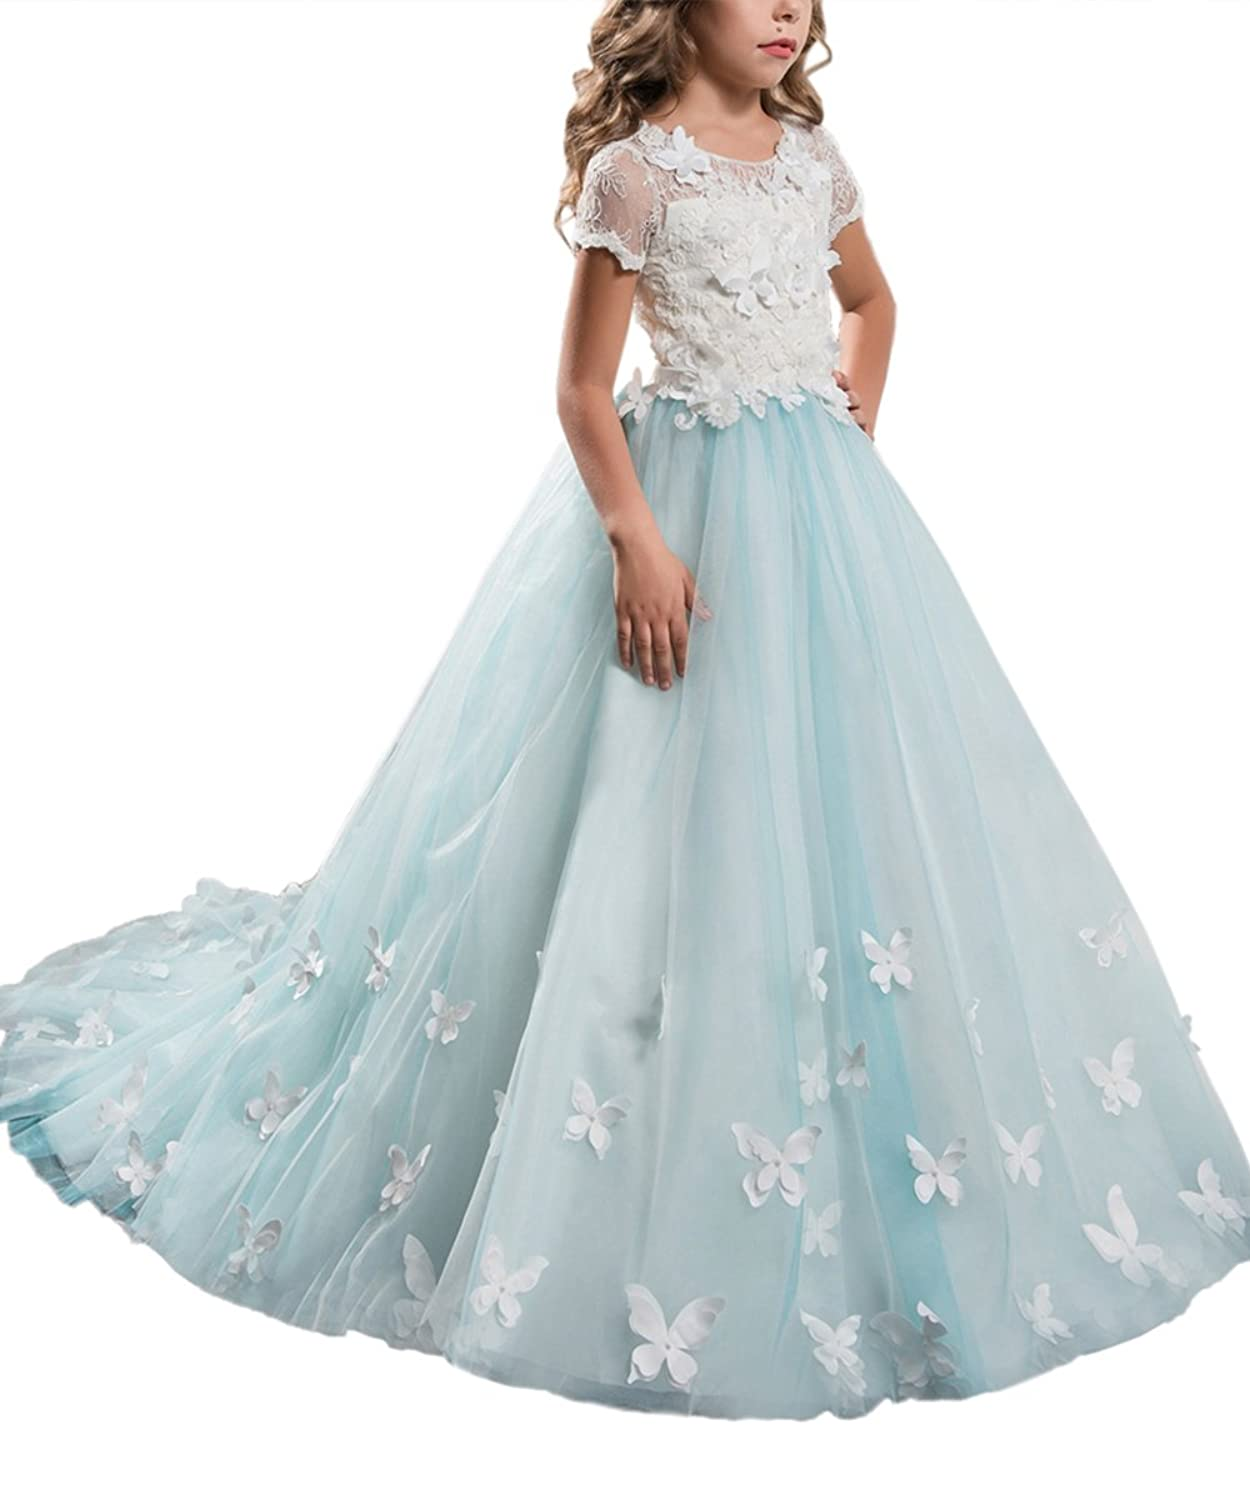 PLwedding Elegant Lace Applique Floor Length Flower Girl Dress Wedding Birthday Pageant Ball Gown